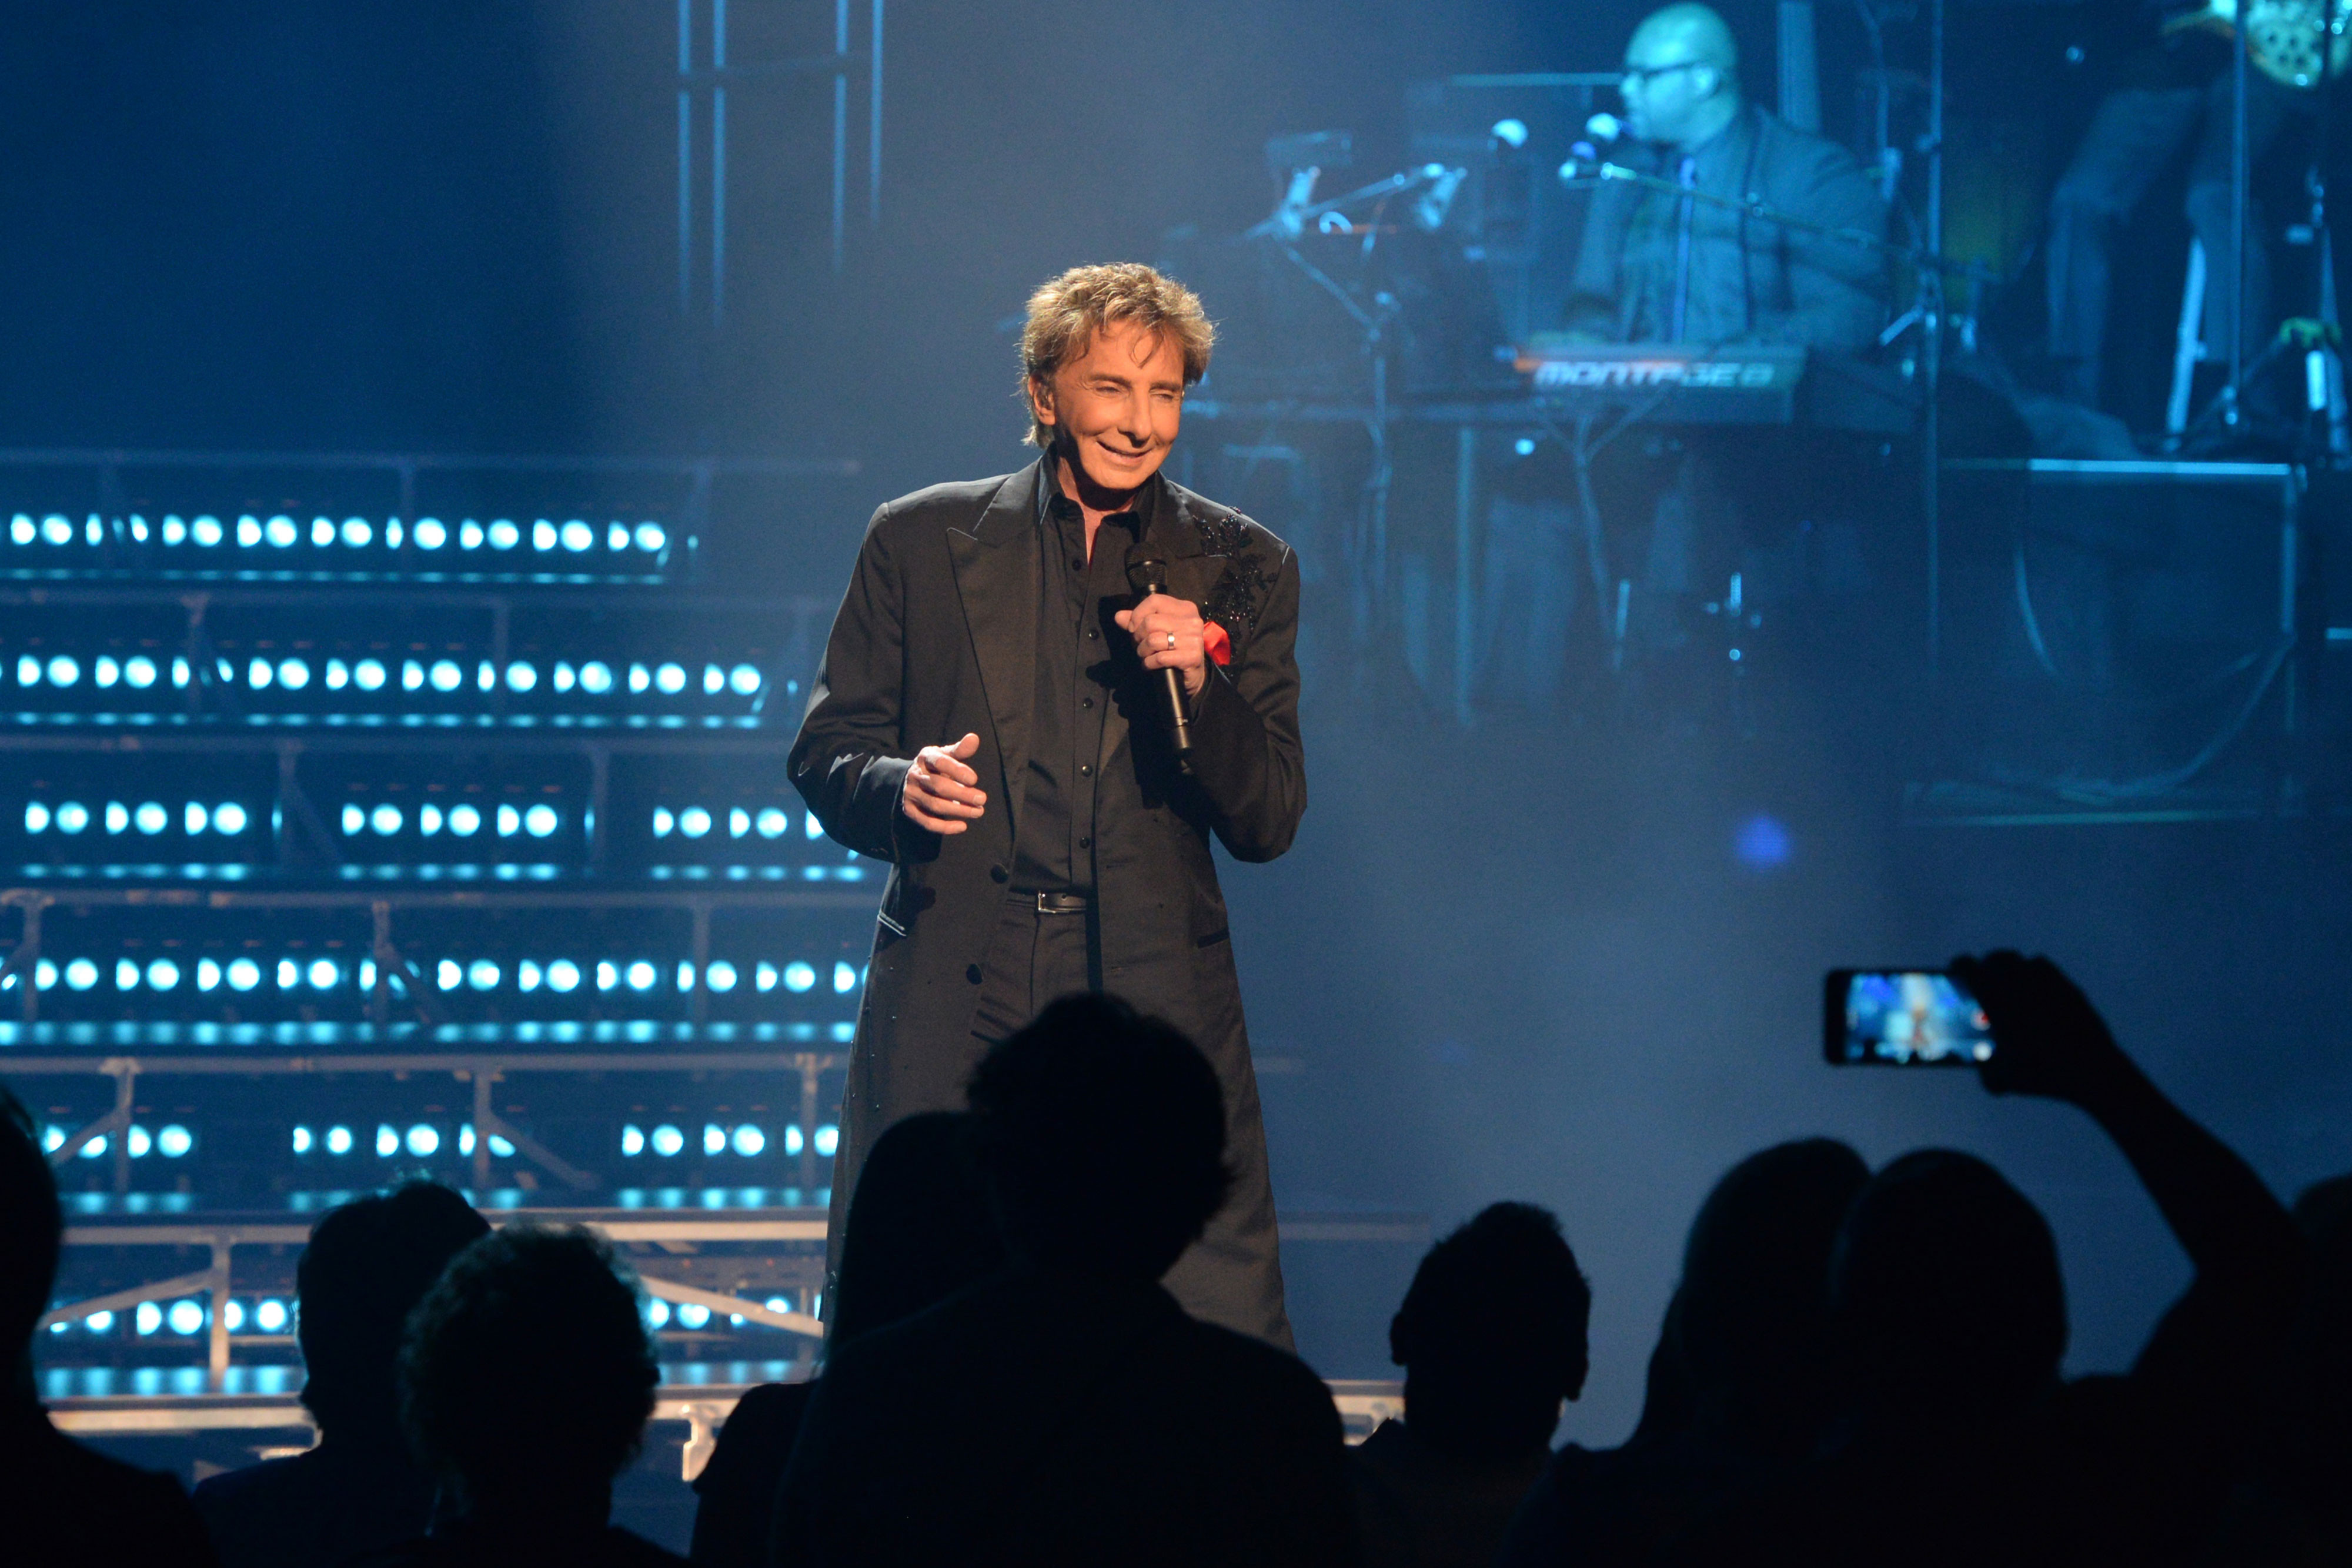 How much is the Barry Manilow show at Westgate Las Vegas?